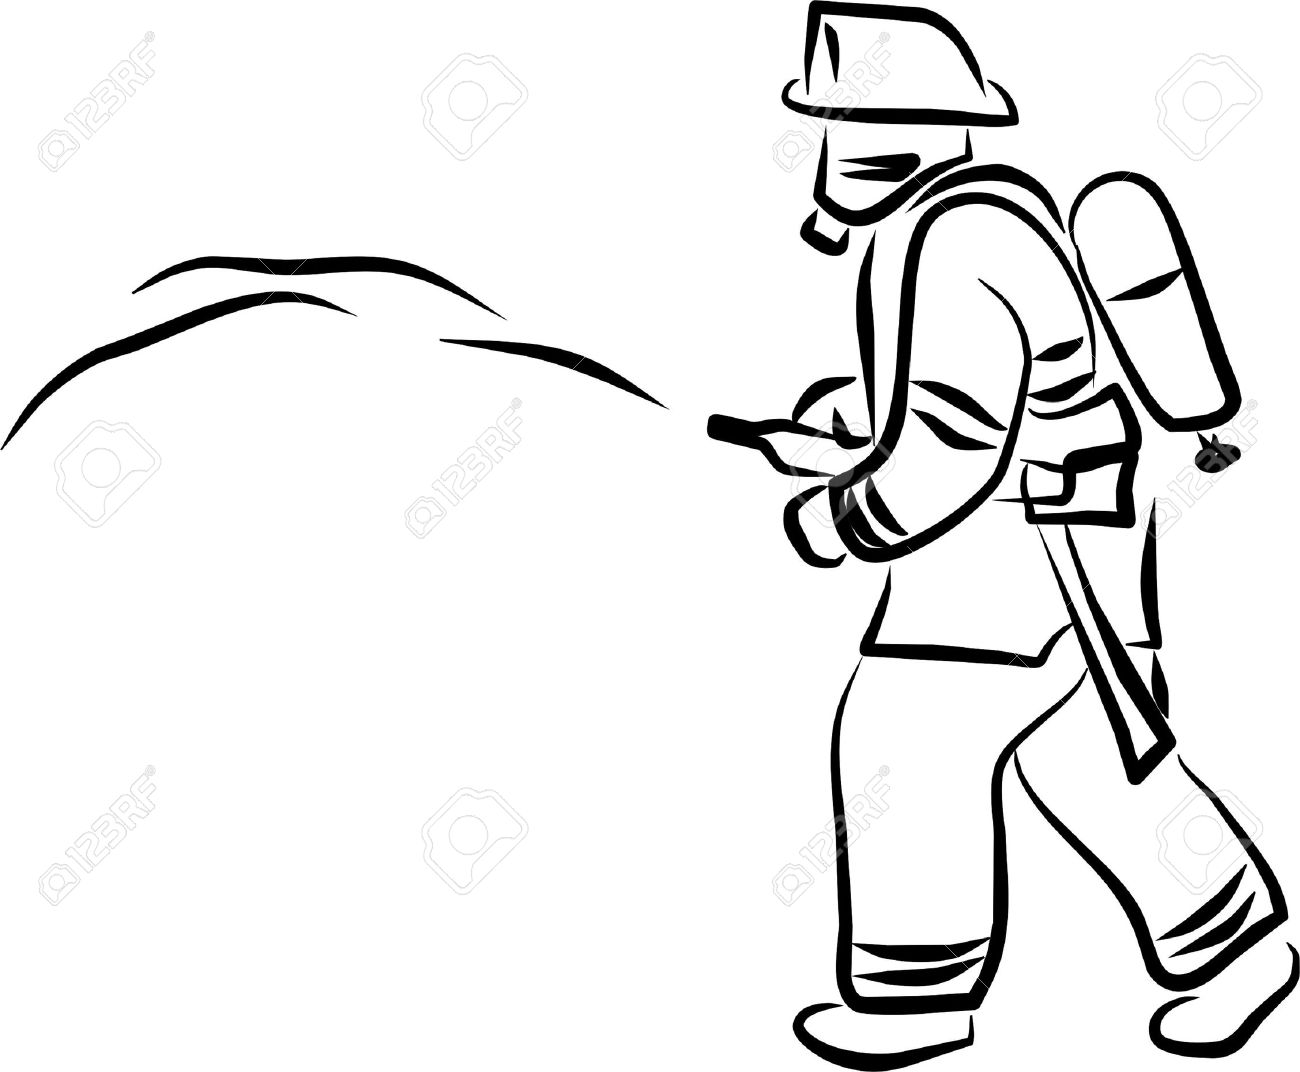 1300x1072 Extinguish Fire Firefighter Clipart, Explore Pictures